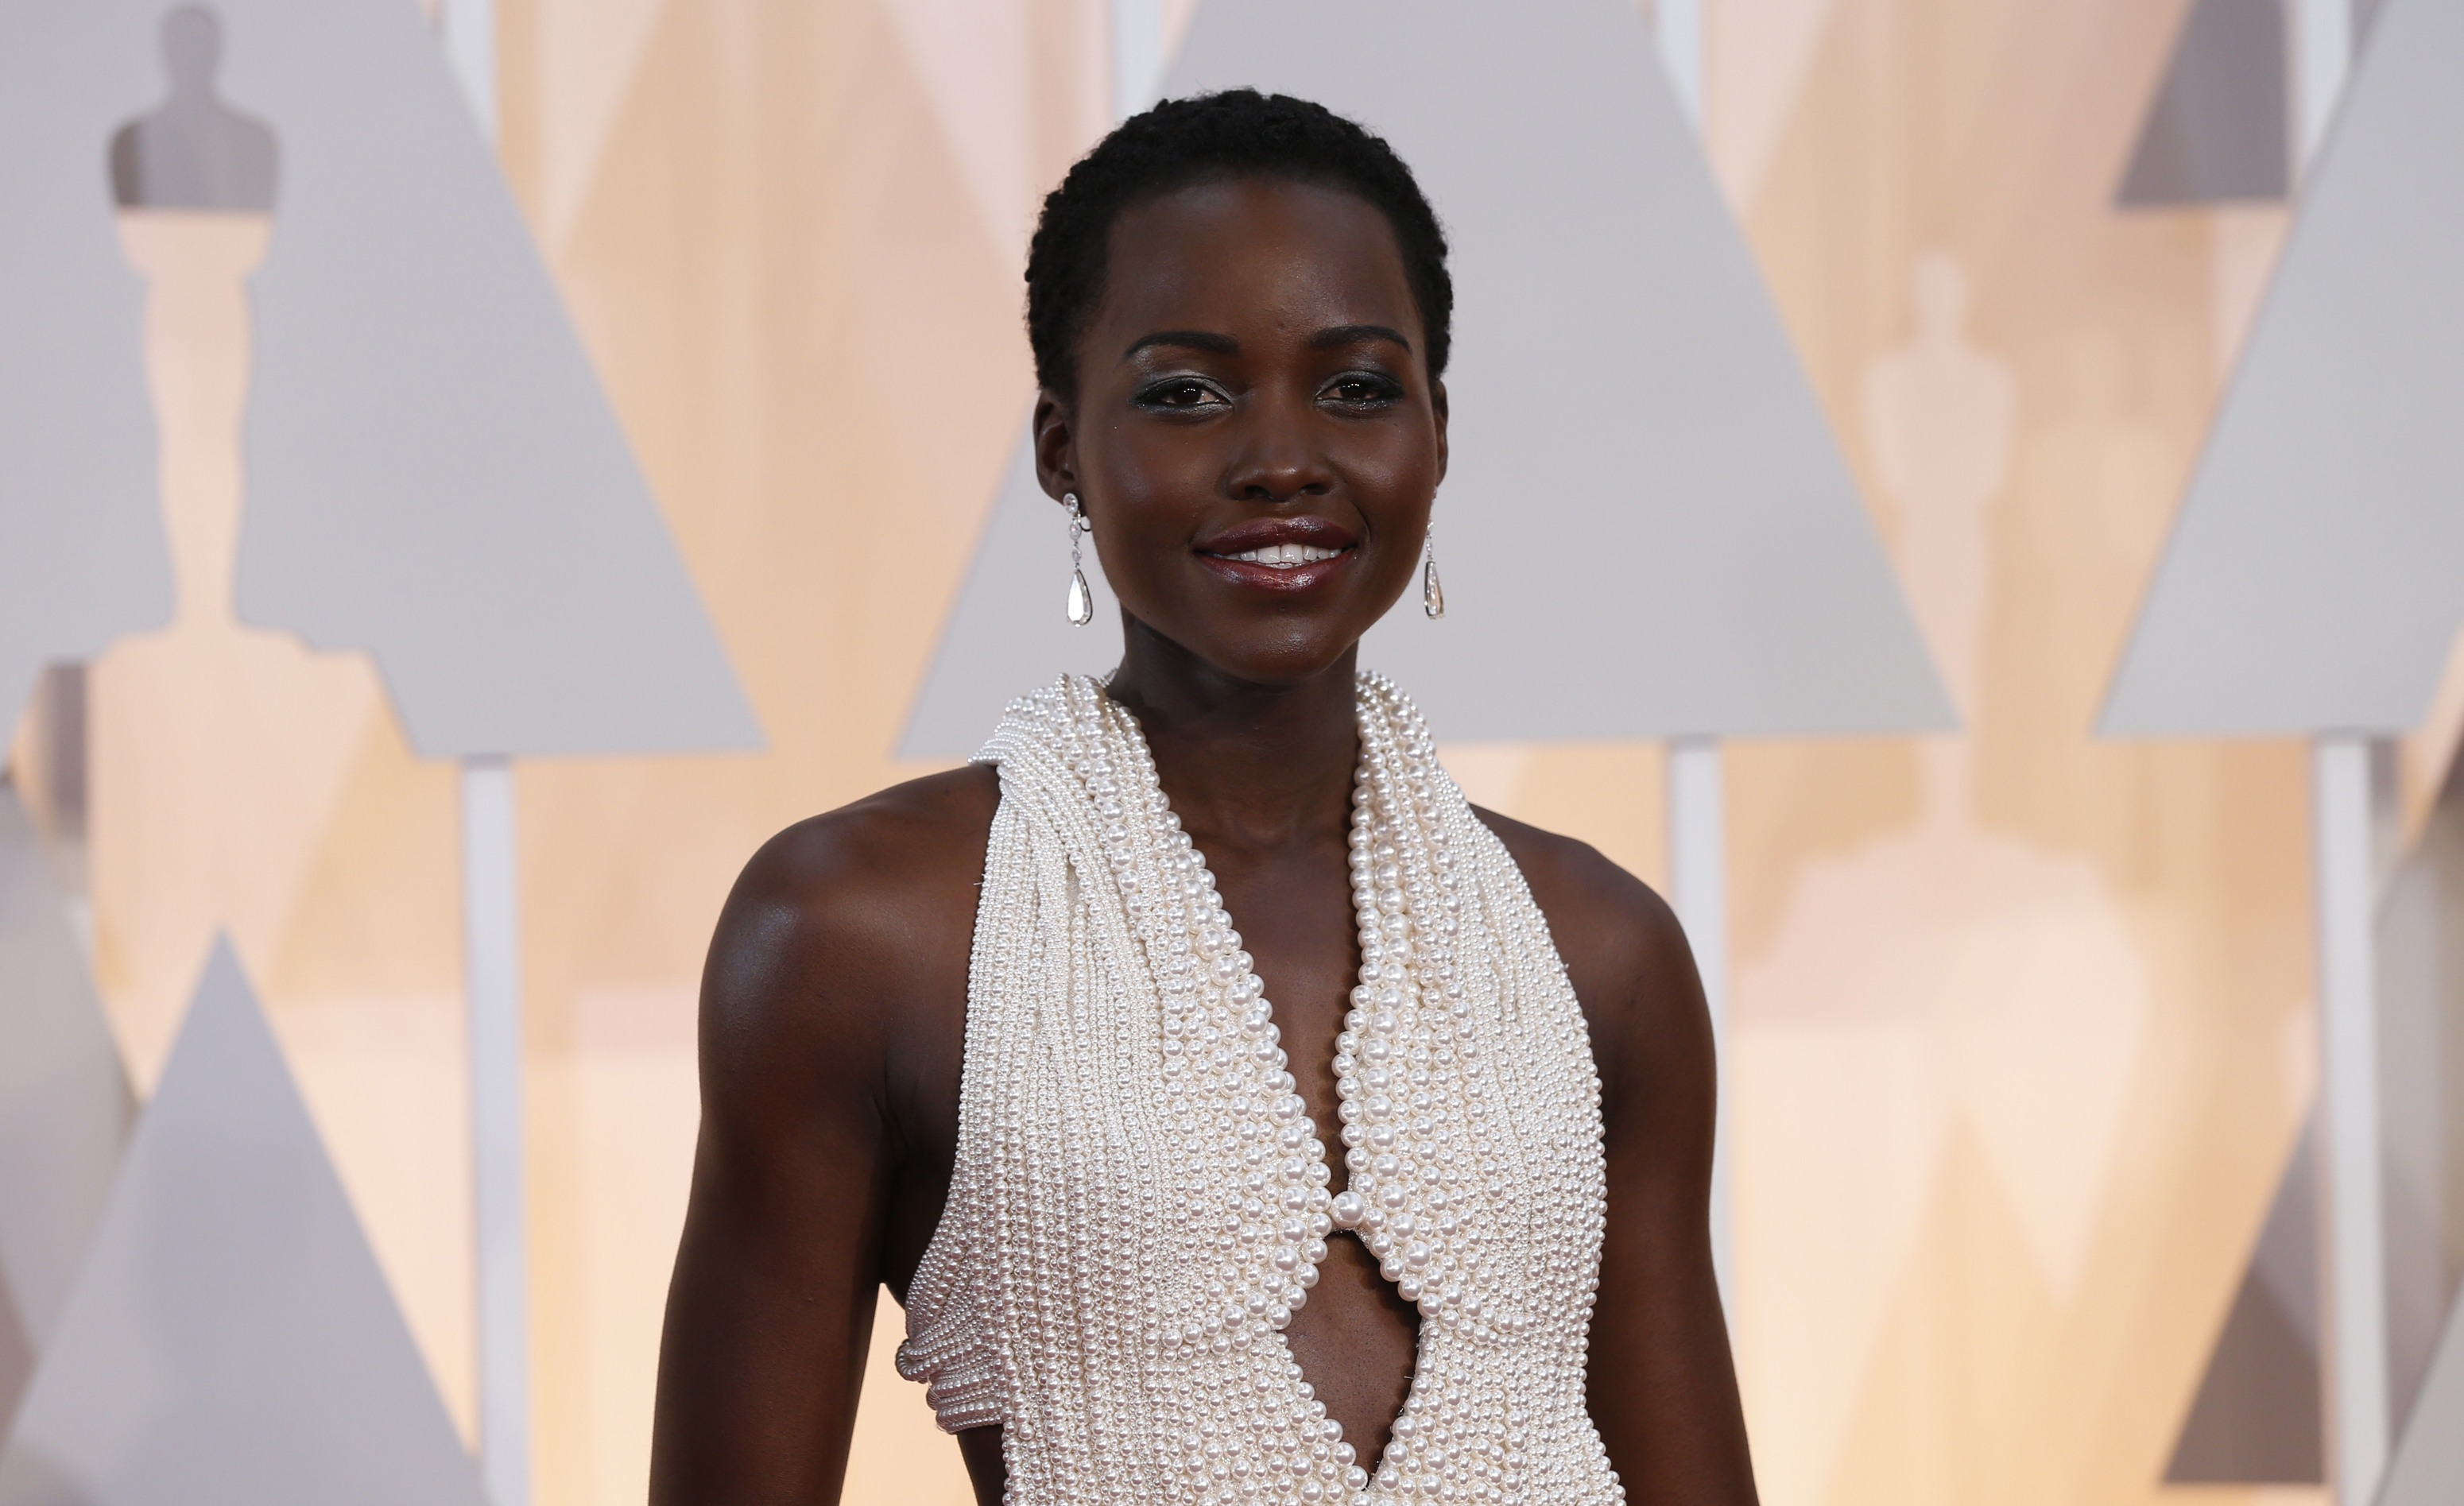 Actress Lupita Nyong'o wears a Calvin Klein gown and Chopard diamonds as she arrives at the 87th Academy Awards in Hollywood, California in this February 22, 2015 file photo. The $150,000 pearl-studded, custom-made Calvin Klein dress worn by Oscar-winning actress Lupita Nyong'o at this year's Academy Awards has been stolen, police said on February 26, 2015. REUTERS/Mario Anzuoni/Files (UNITED STATES - Tags: ENTERTAINMENT CRIME LAW)